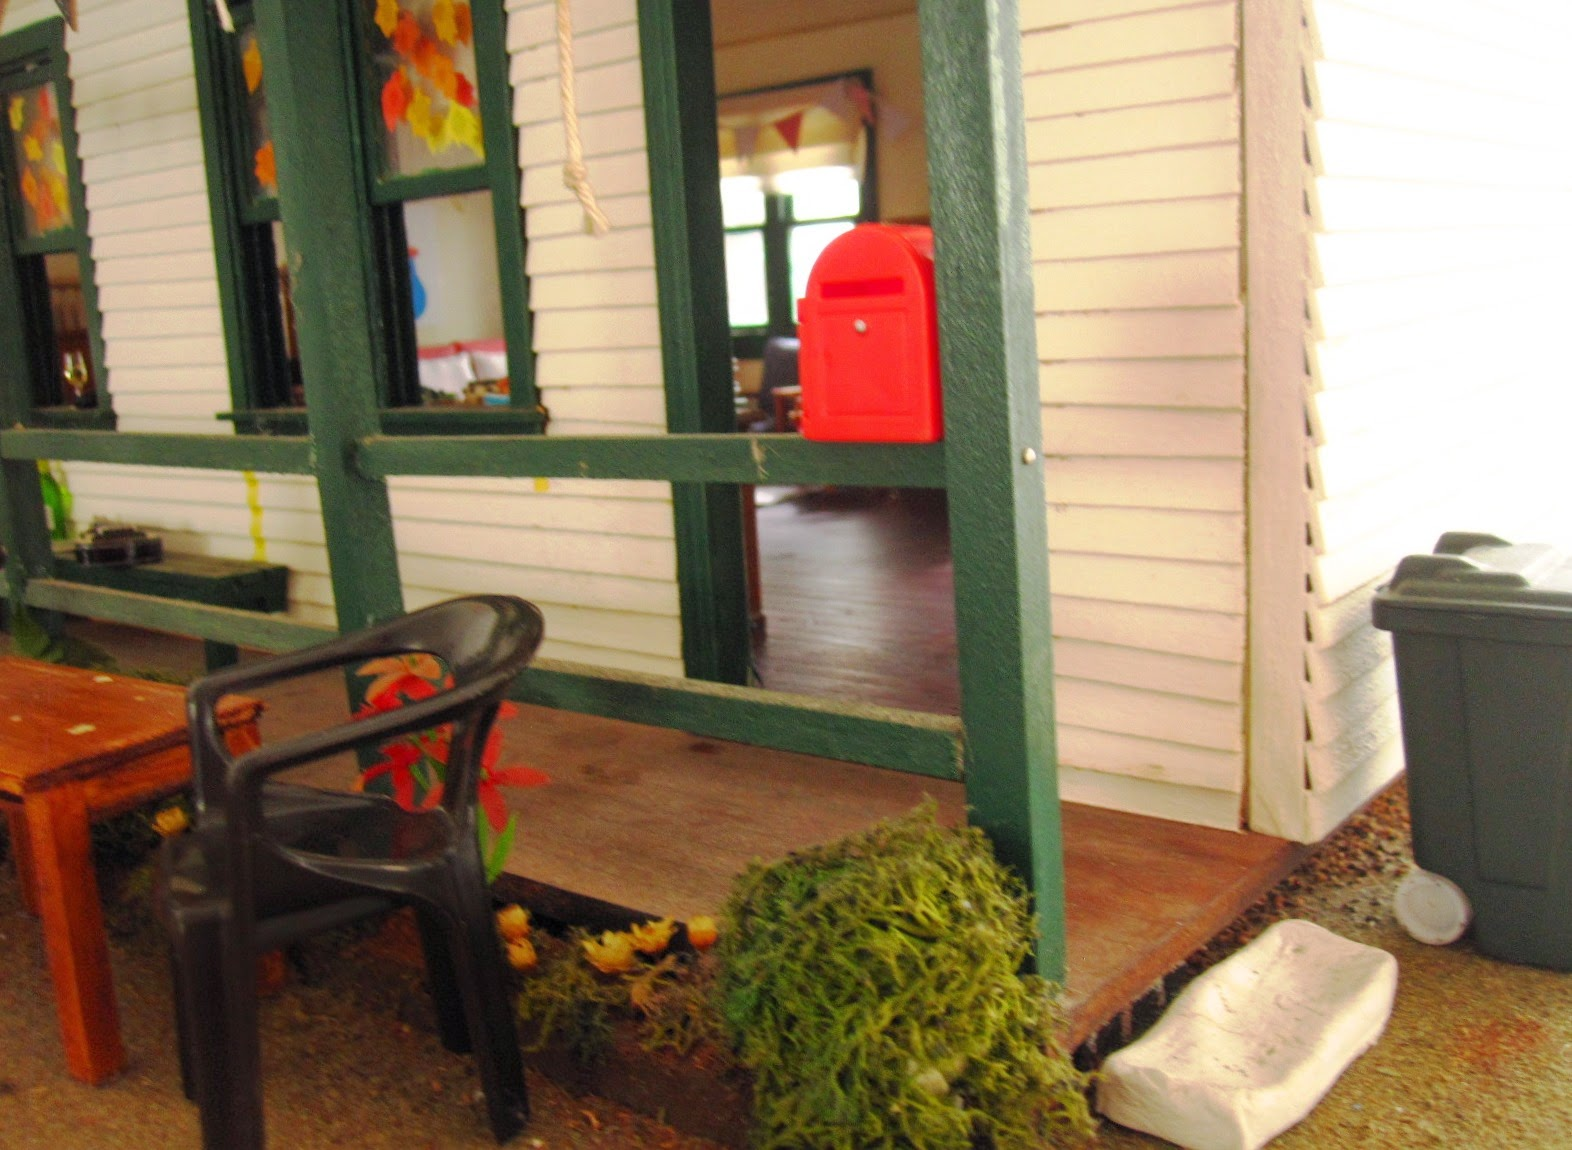 Entry to a miniature dolls' house school with garden chair and a table outside.